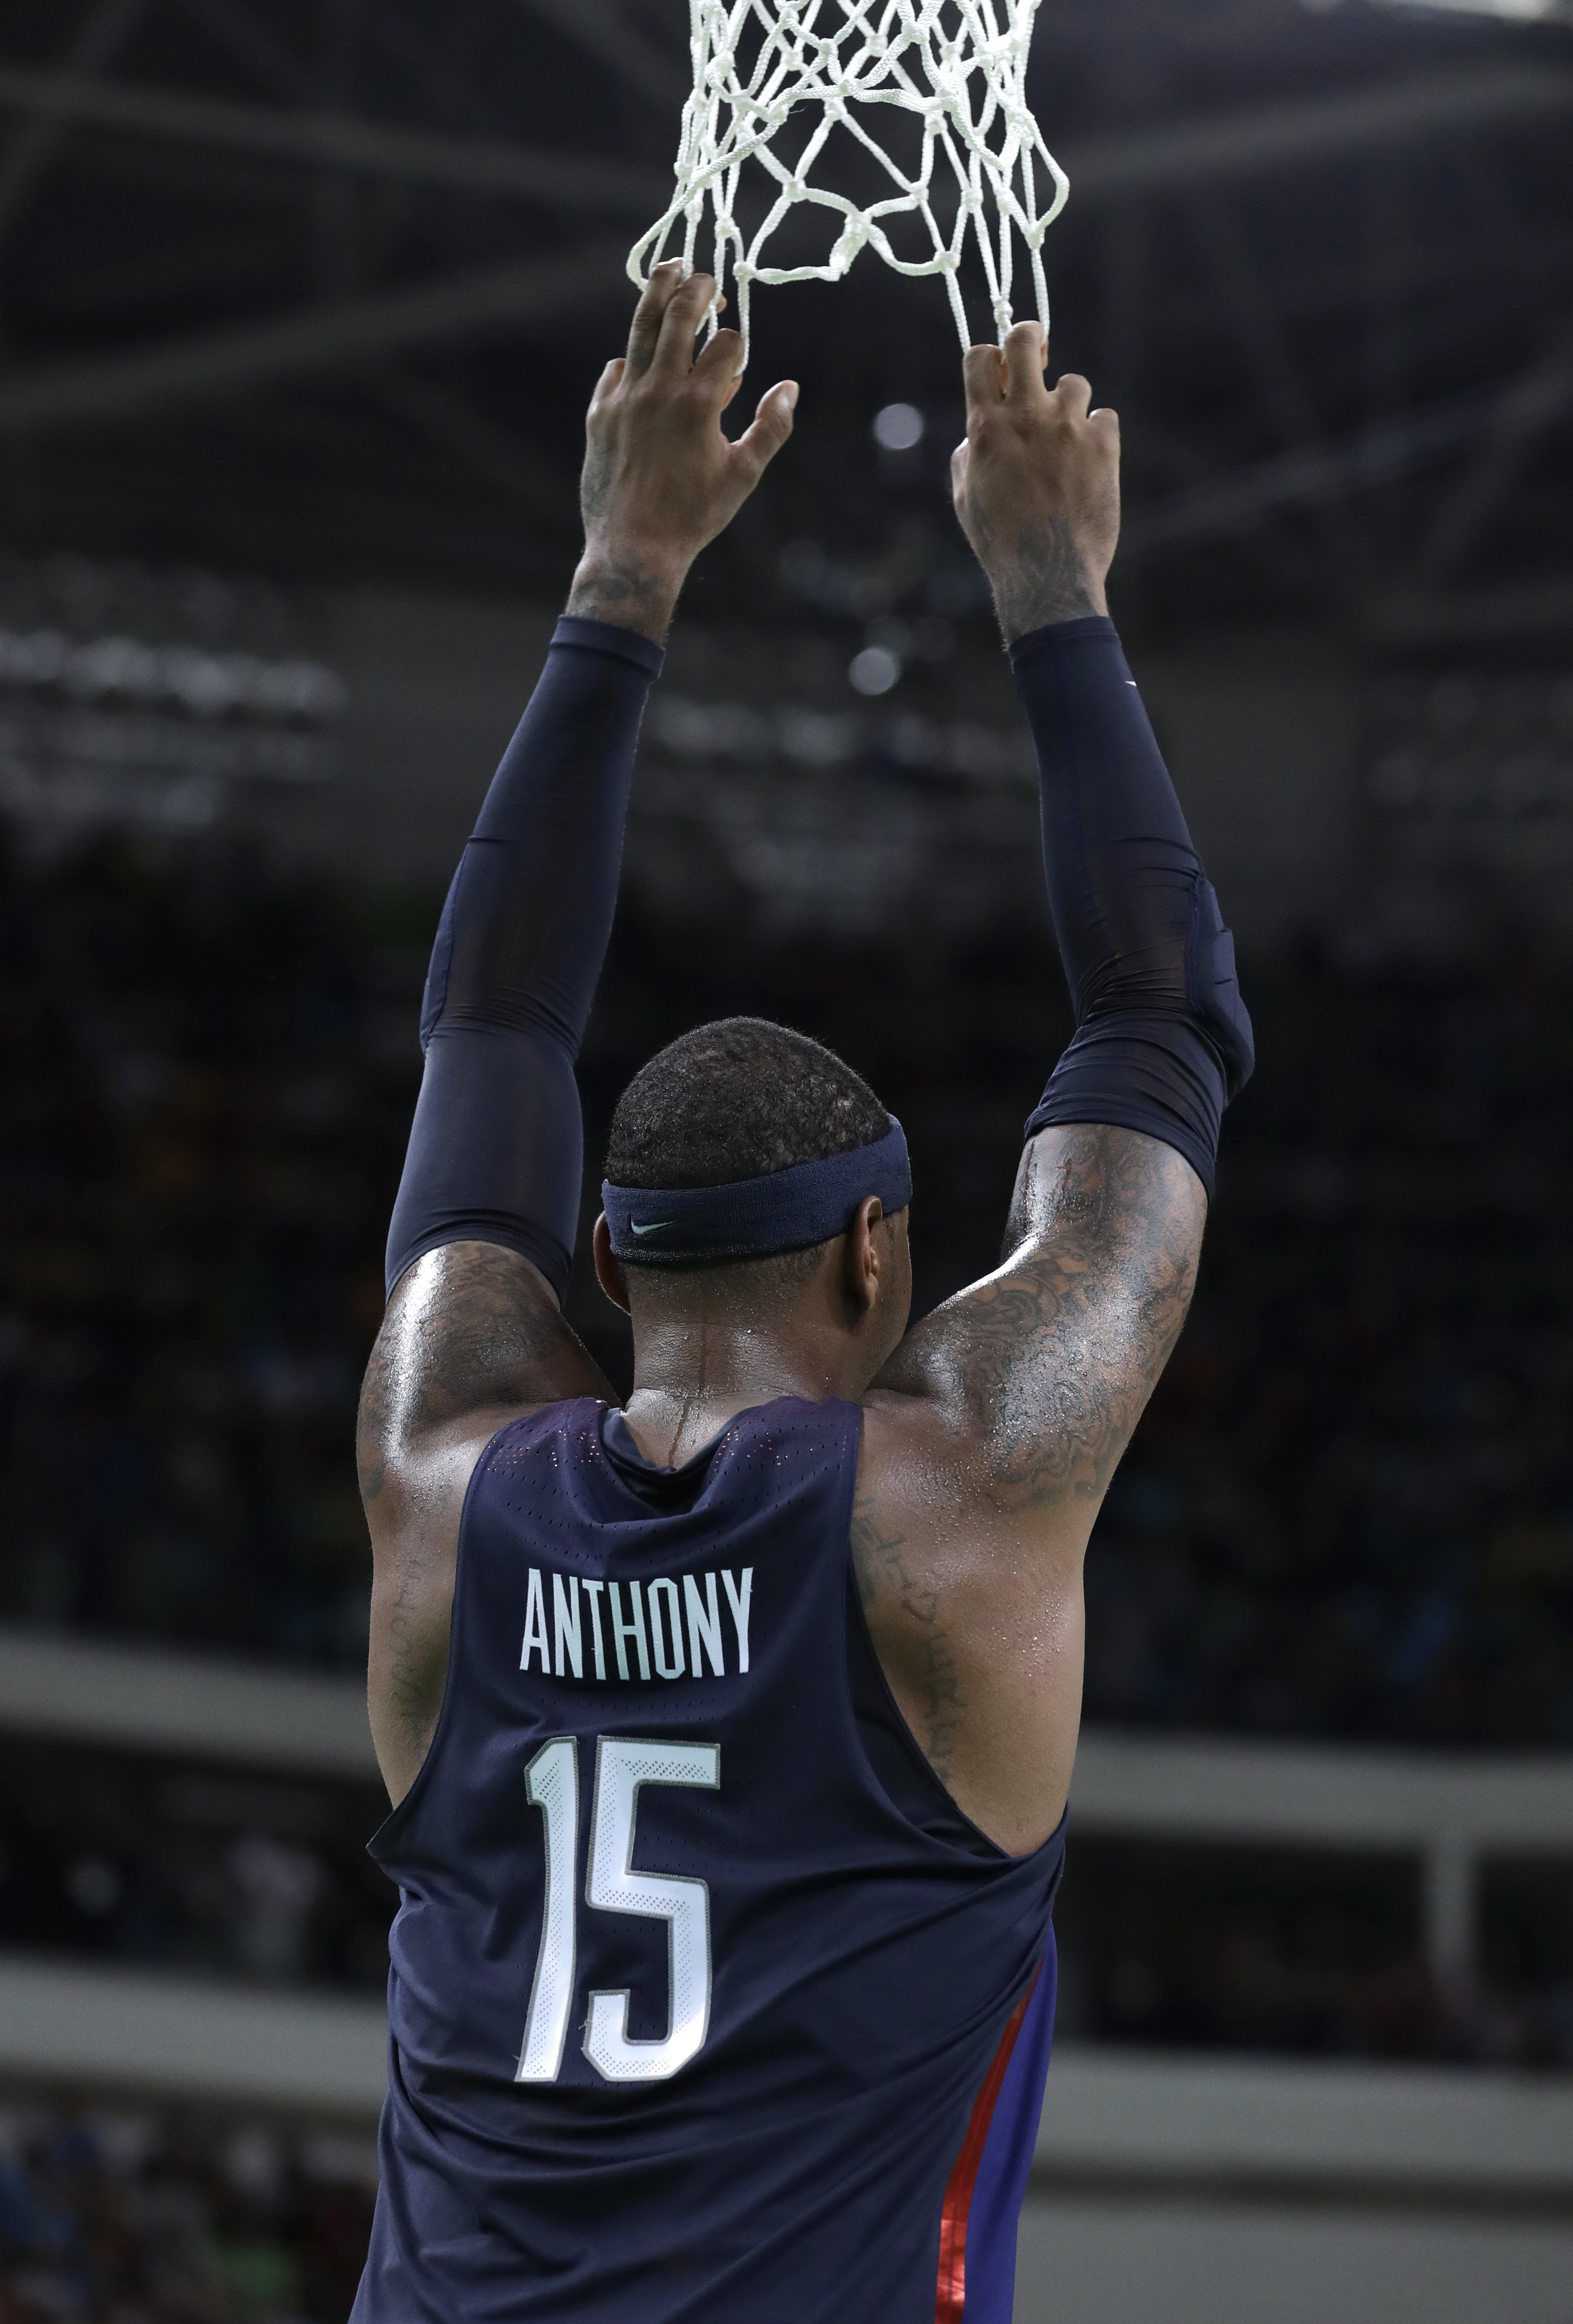 United States' Carmelo Anthony (15) watches the final seconds of a basketball game against Australia at the 2016 Summer Olympics in Rio de Janeiro, Brazil, Wednesday, Aug. 10, 2016. (AP Photo/Charlie Neibergall)